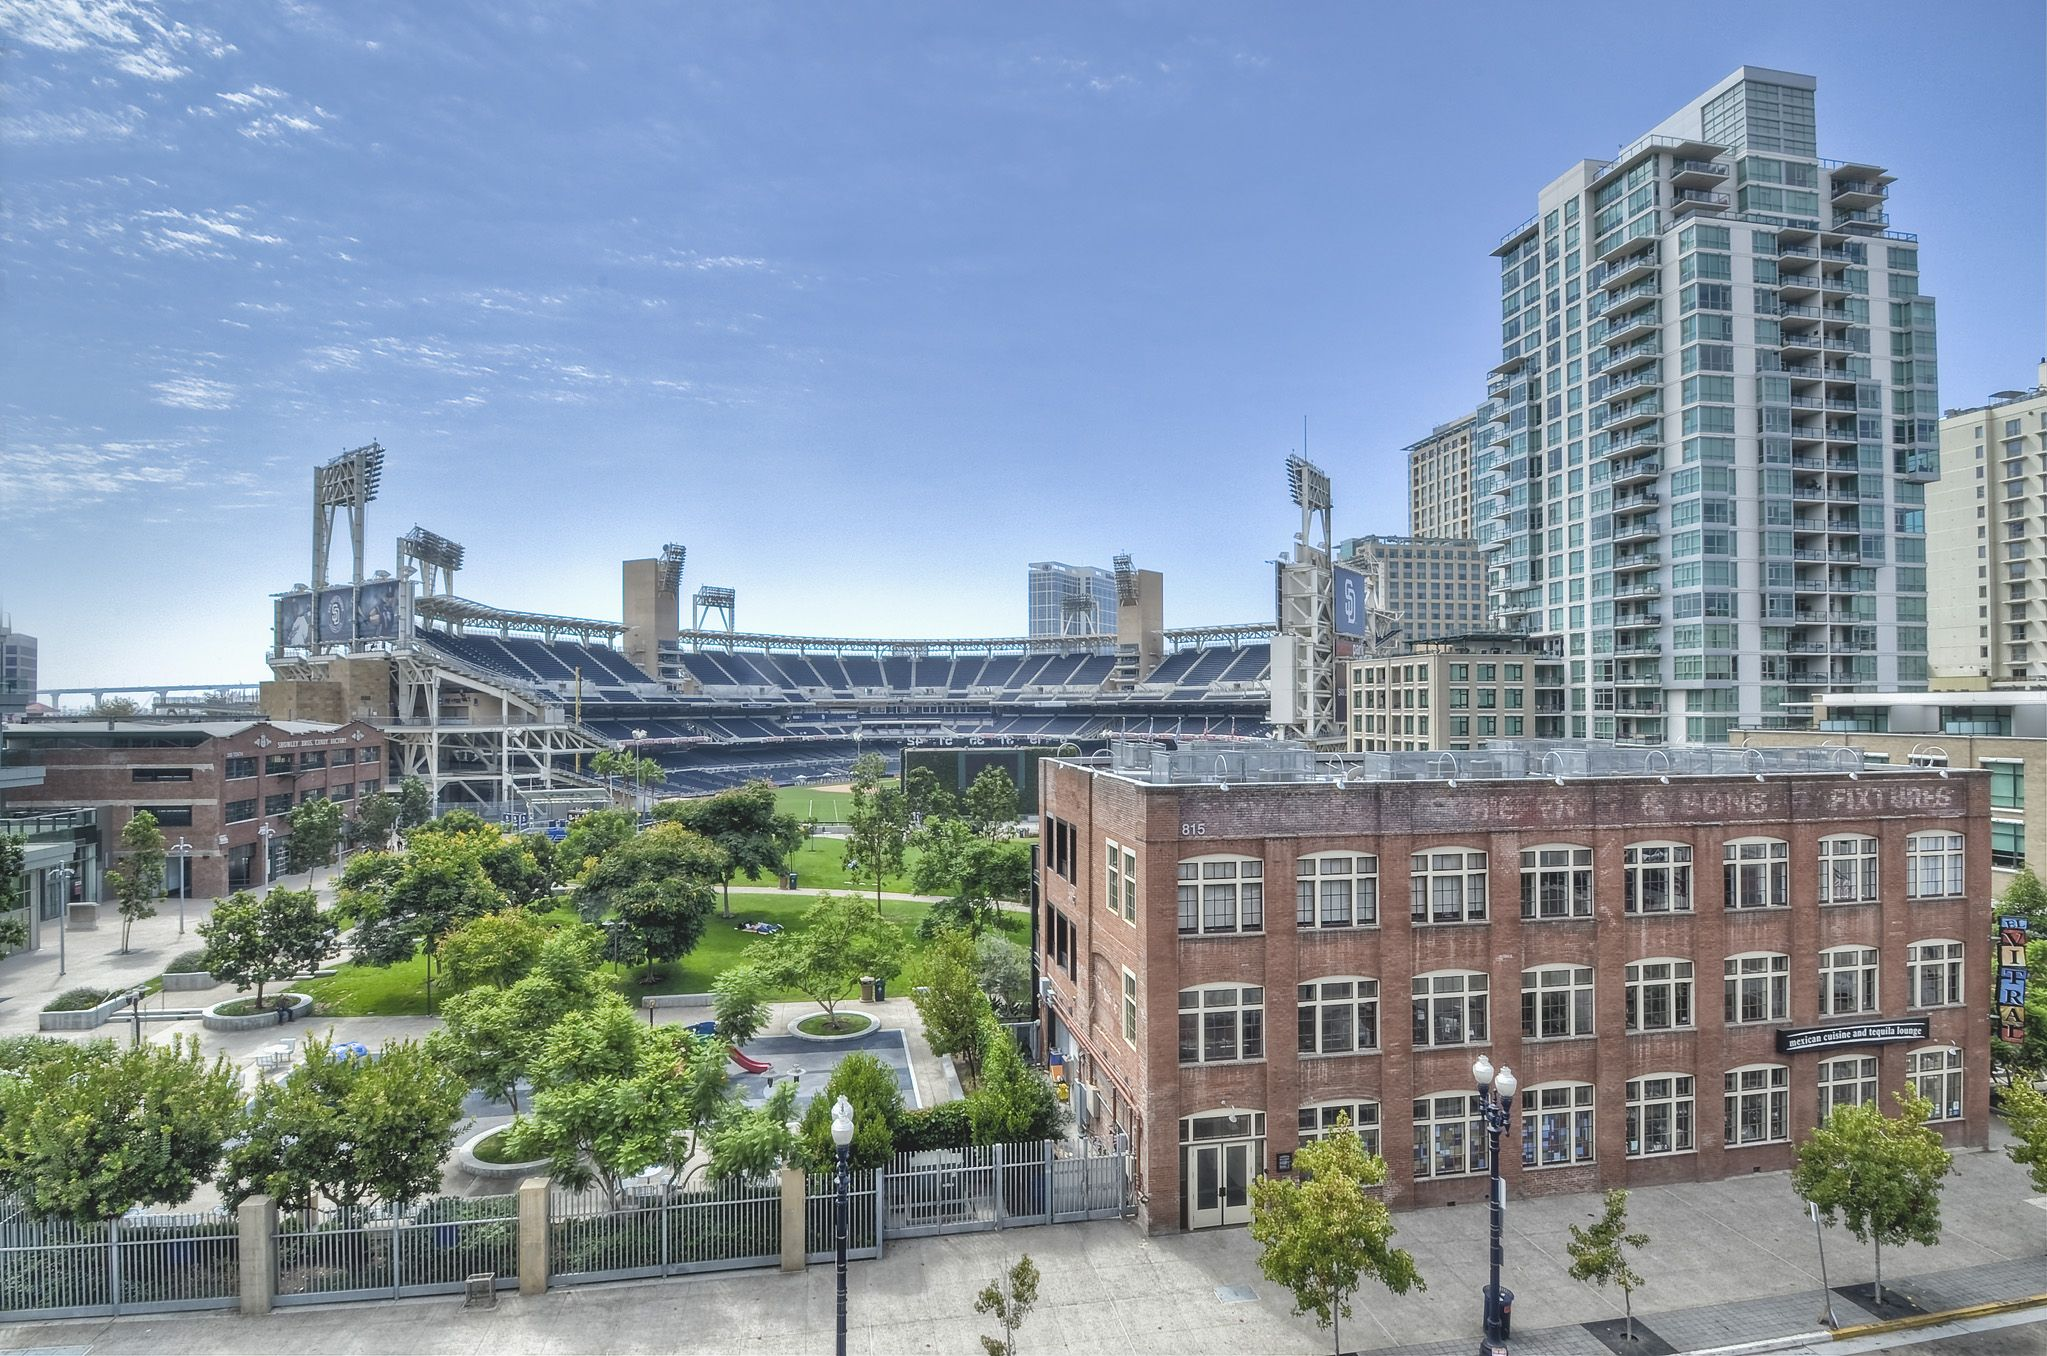 Stadium View Of Petco Park Home Of The San Diego Padres Colorado Real Estate San Diego East Village